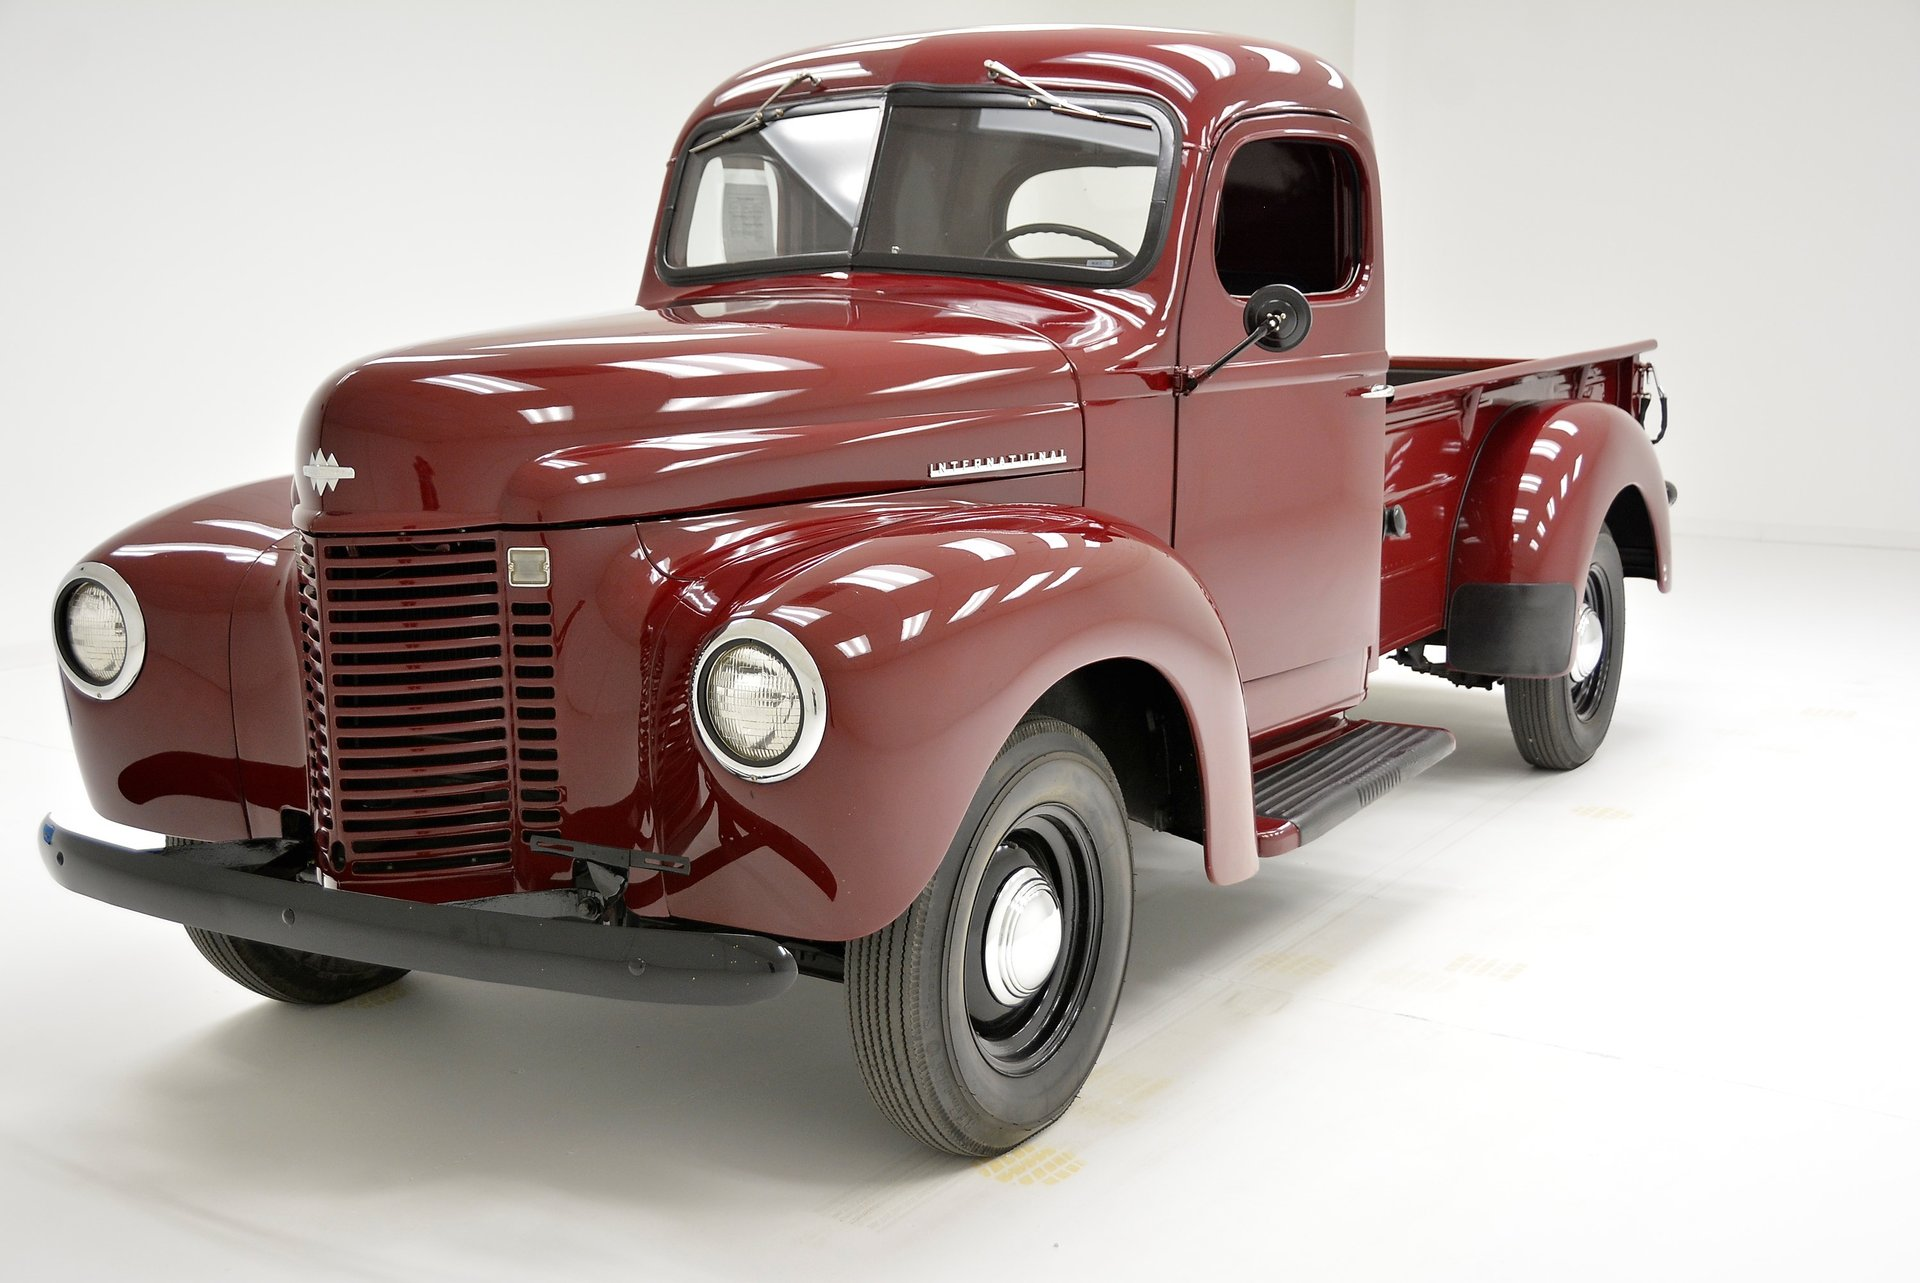 1941 International Model K Pickup Truck